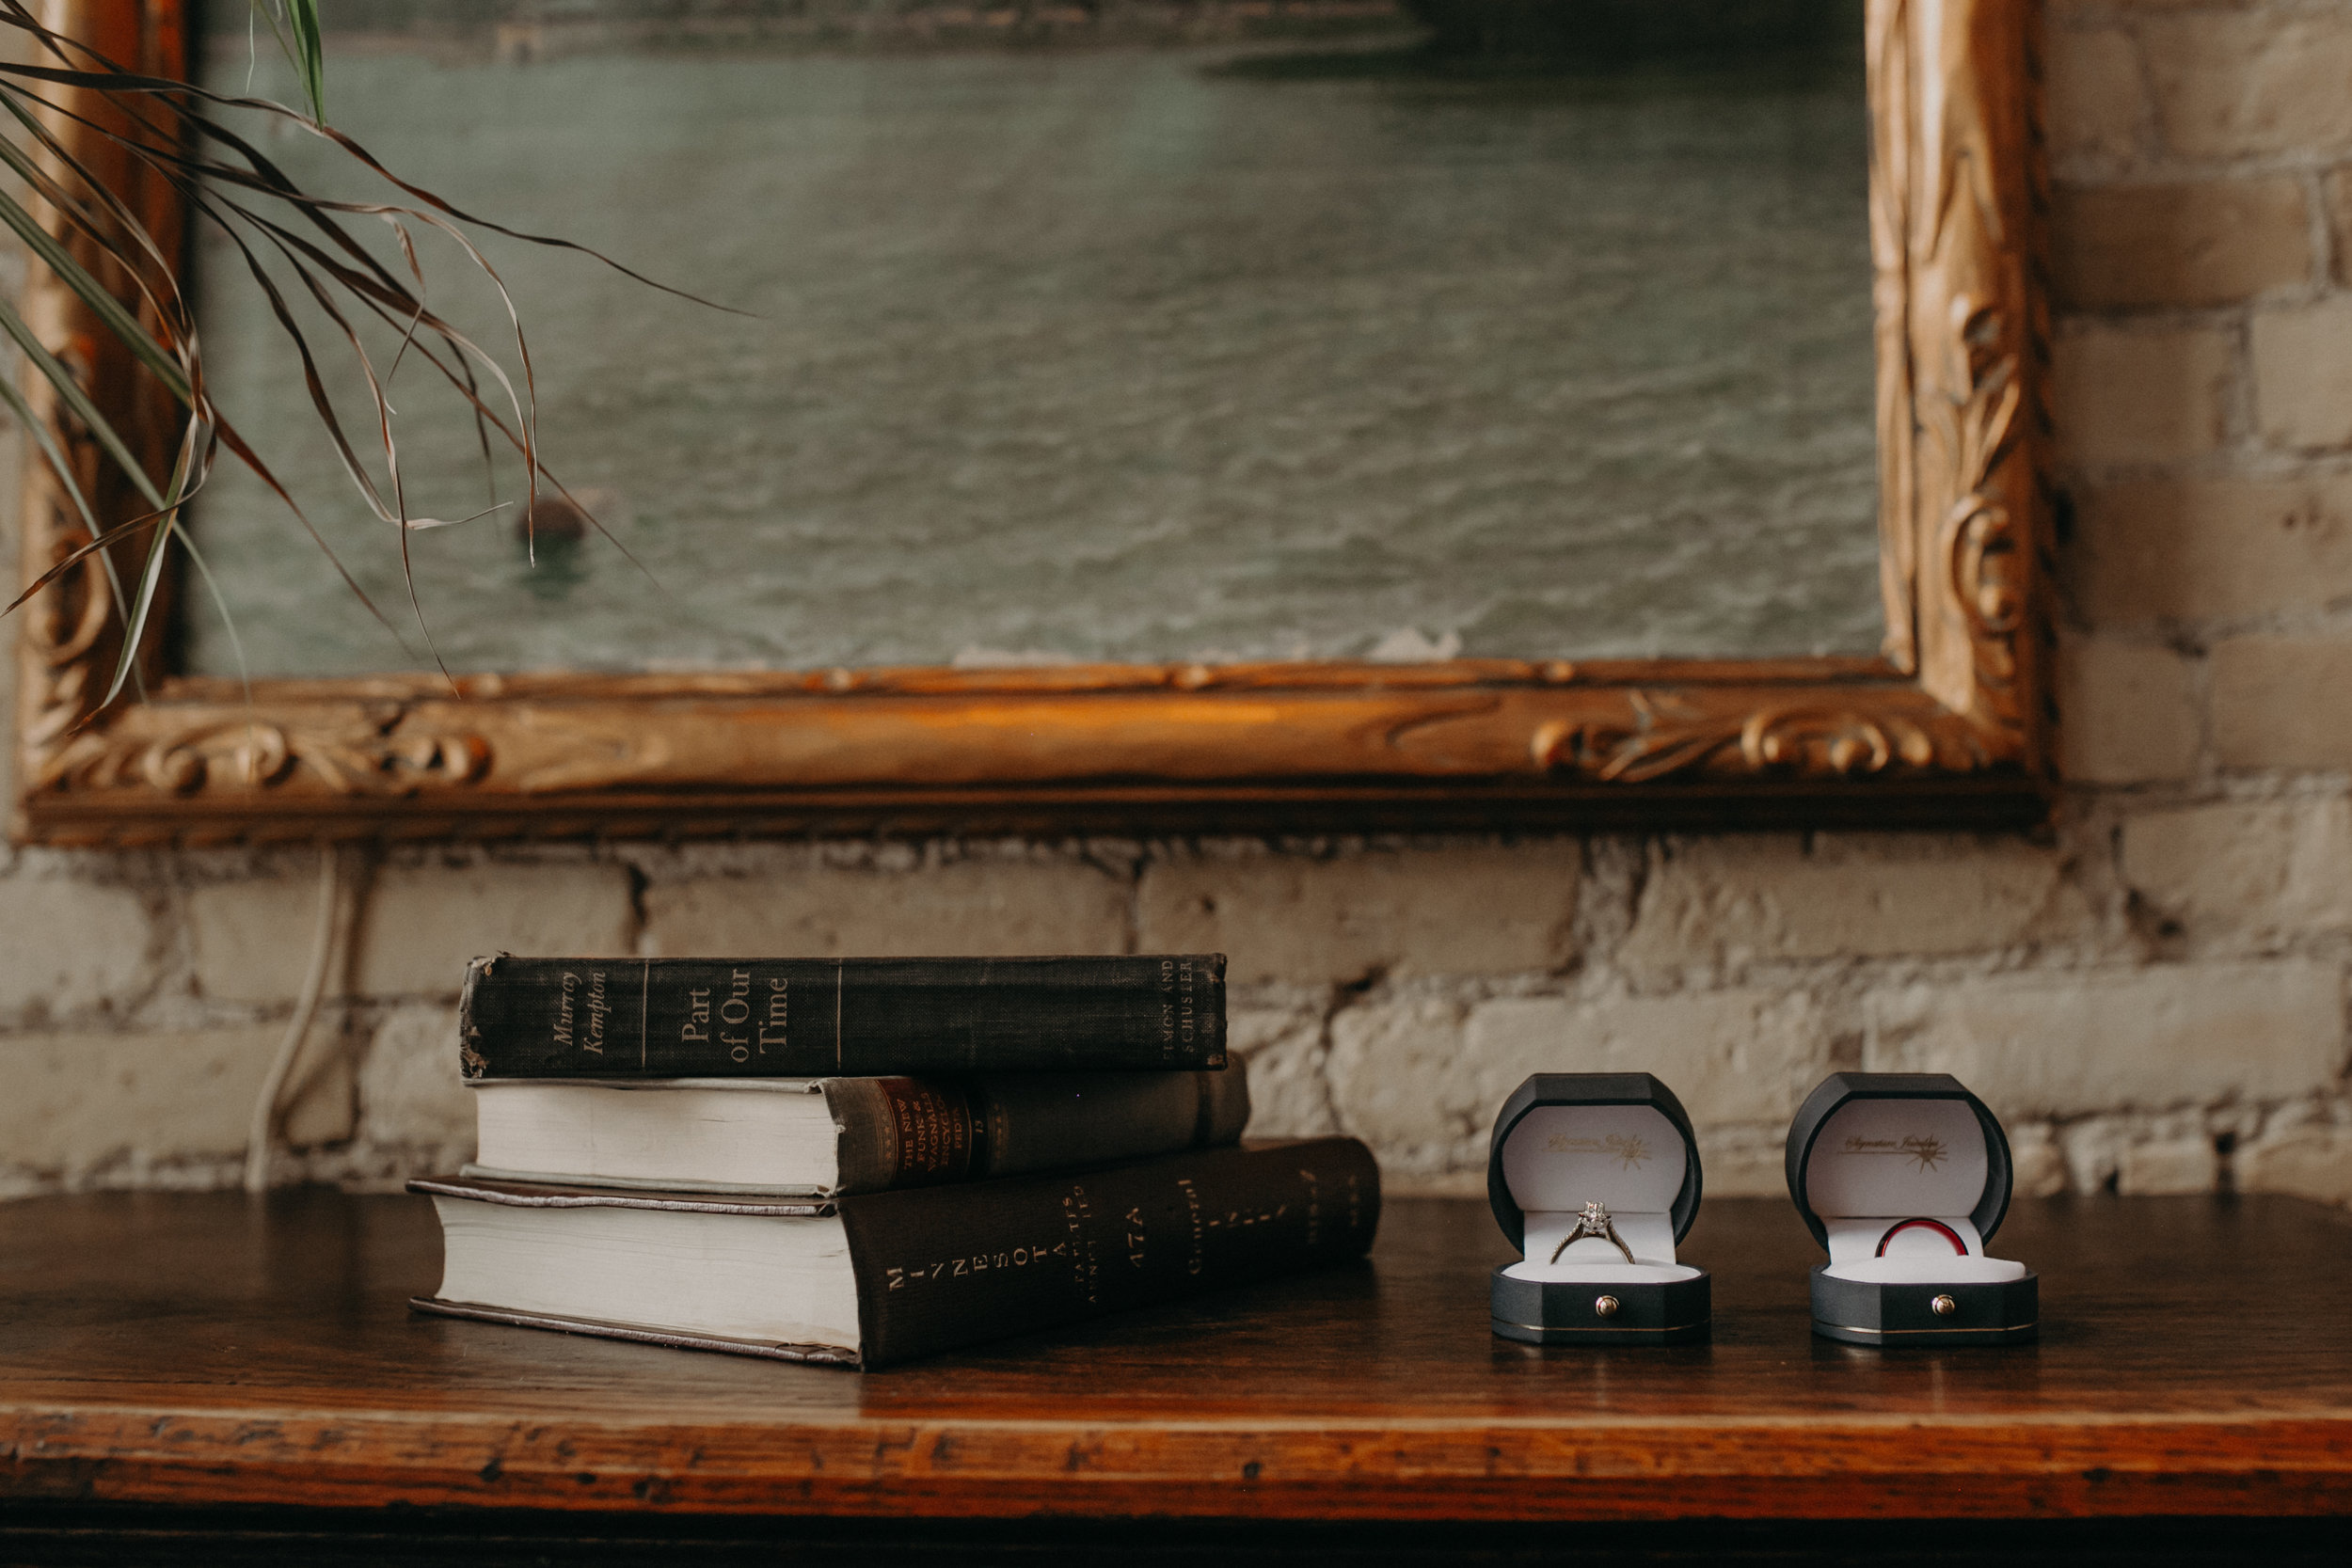 Bride and Groom's wedding rings on a bookshelf at W.A. Frost during a small intimate wedding in March